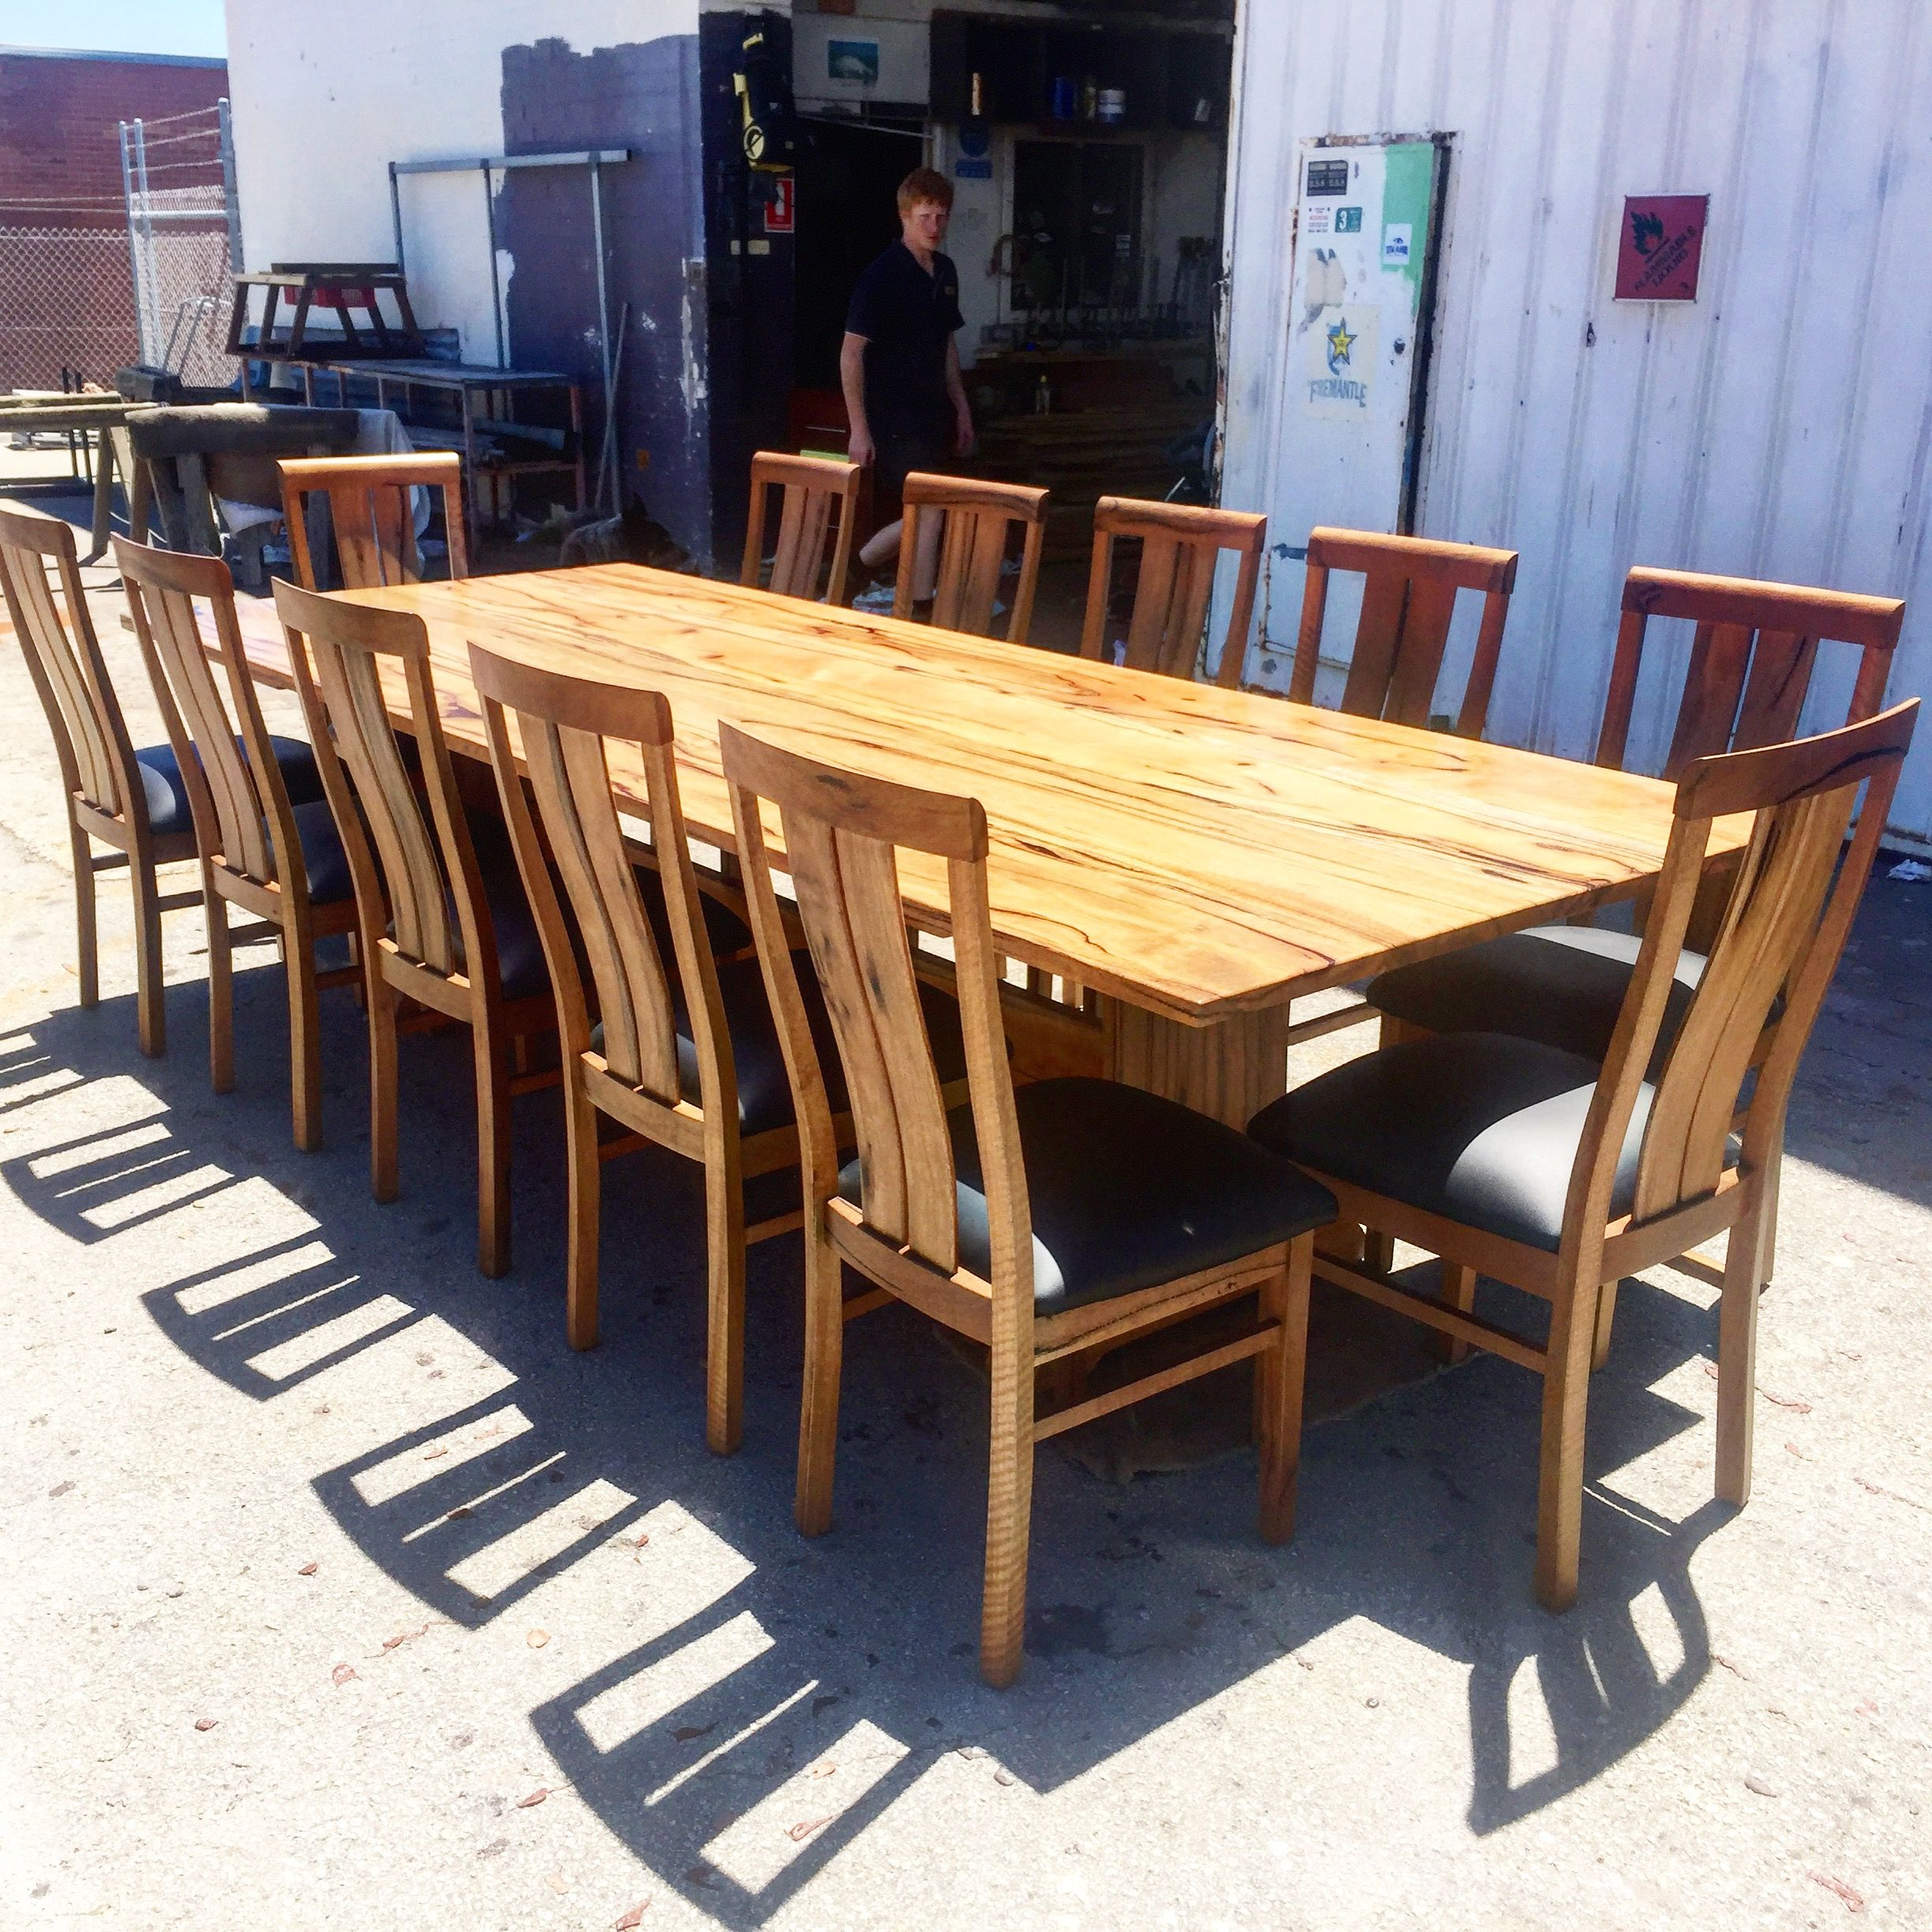 3 Metre Marri Dining Table With 12 Chairs Dining Table Furniture Dining [ 2448 x 2448 Pixel ]